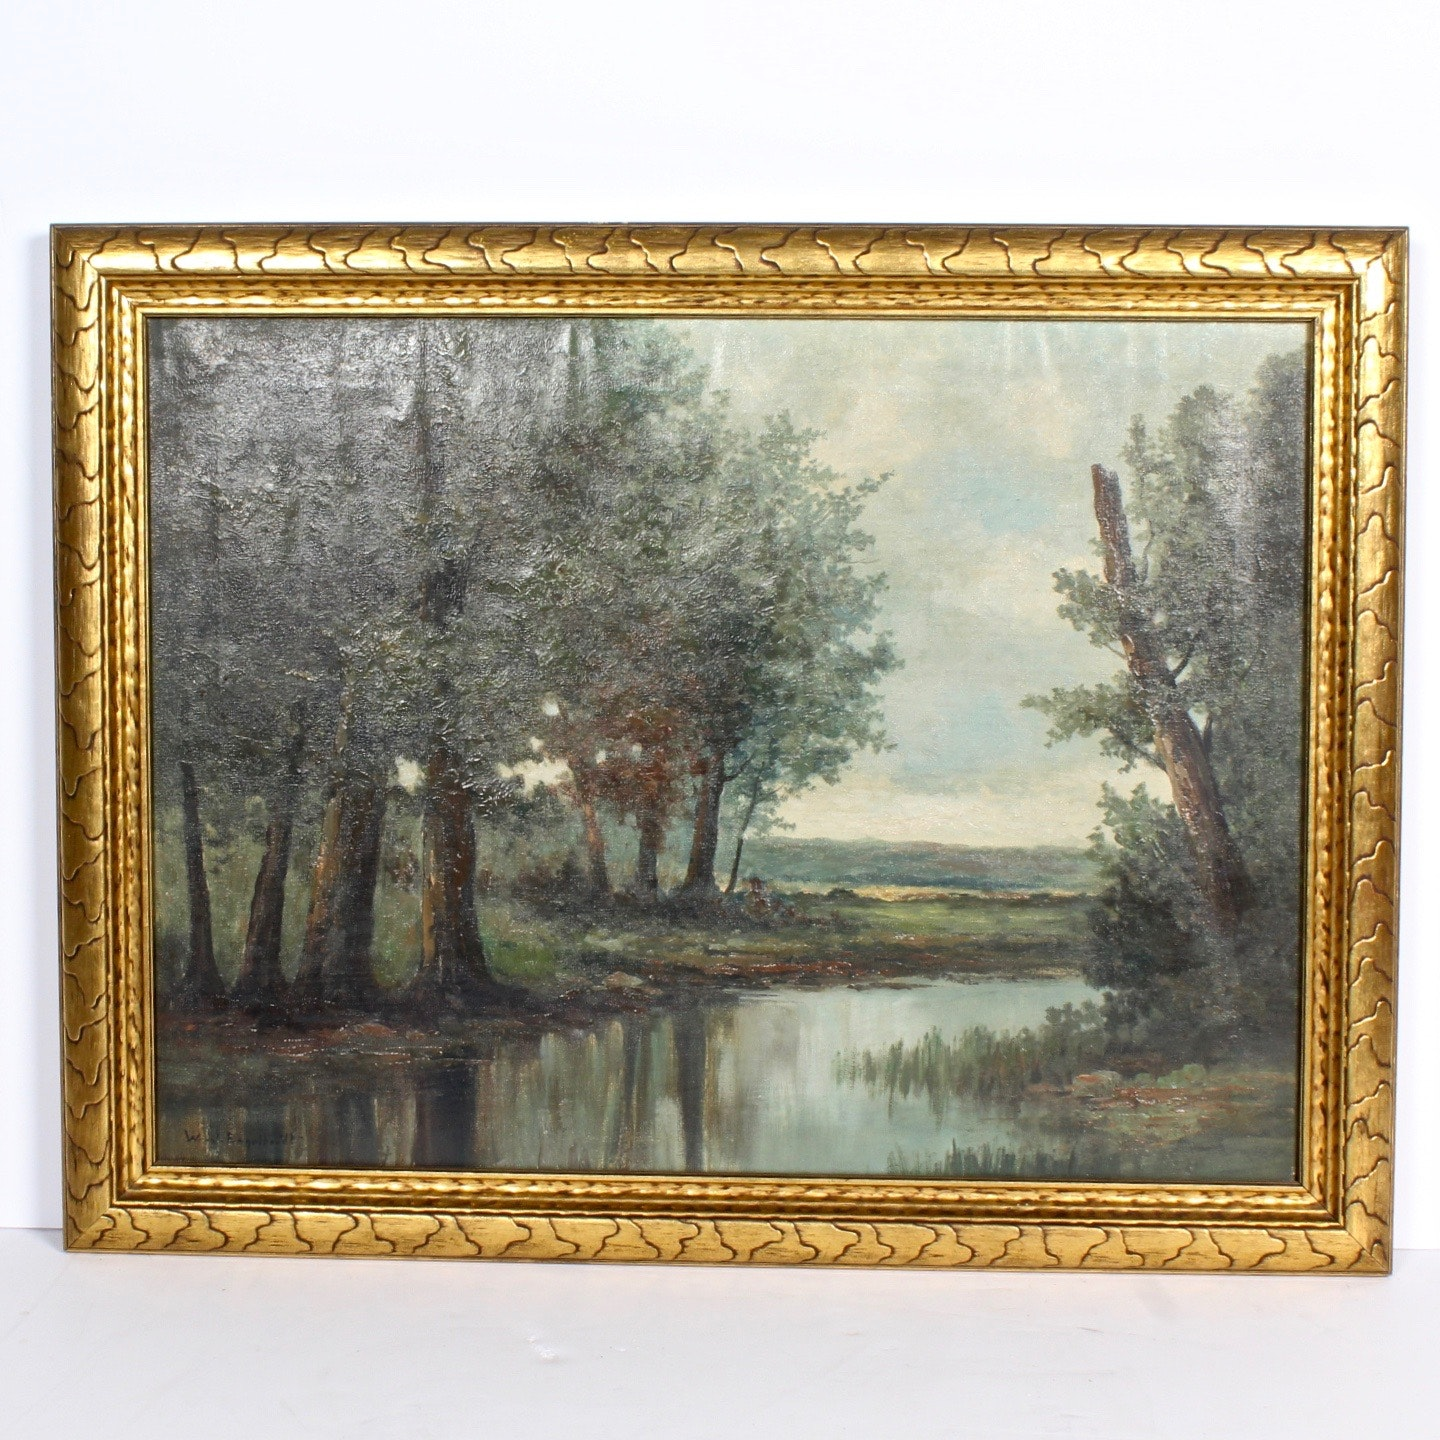 William Engelhardt Oil Painting of a Landscape